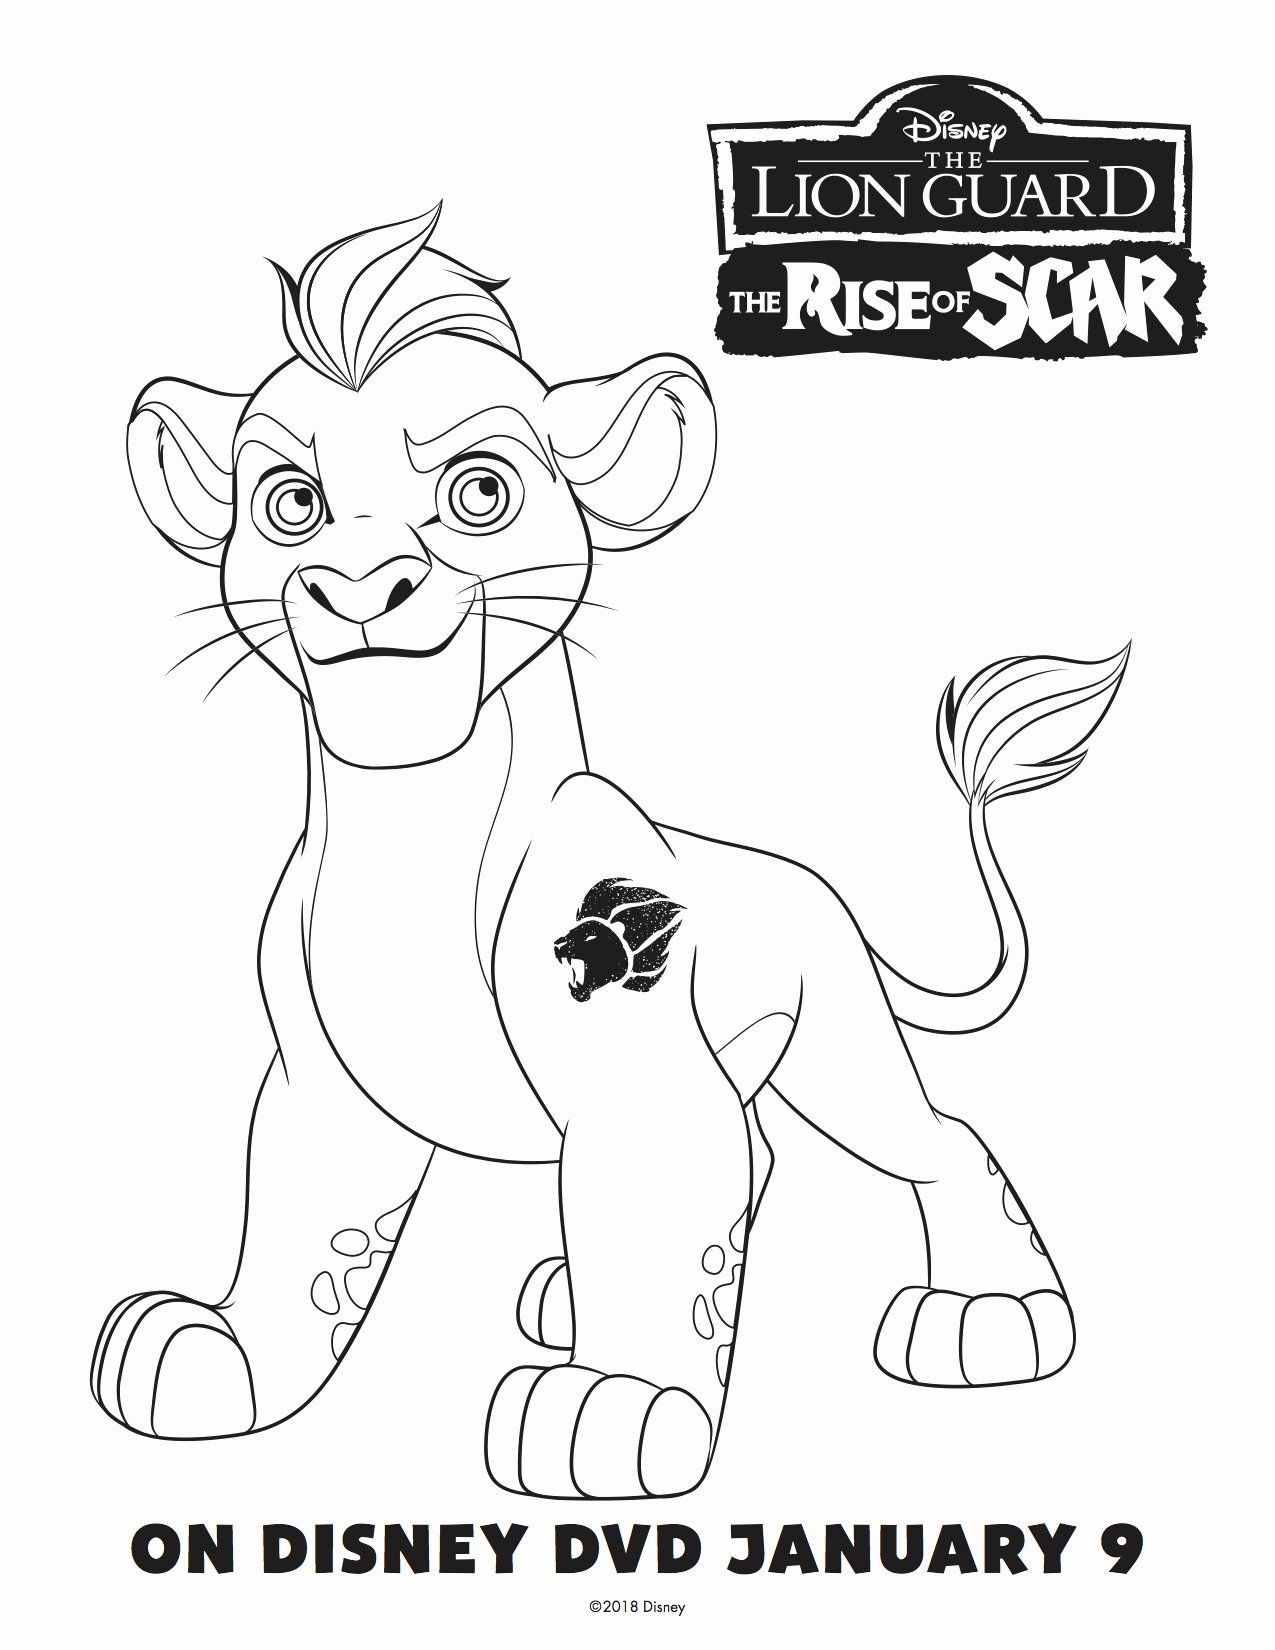 Lion Guard Coloring Book Elegant The Lion Guard The Rise Scar Free Printables Thank You Honey Lion Coloring Pages Coloring Books Free Disney Coloring Pages